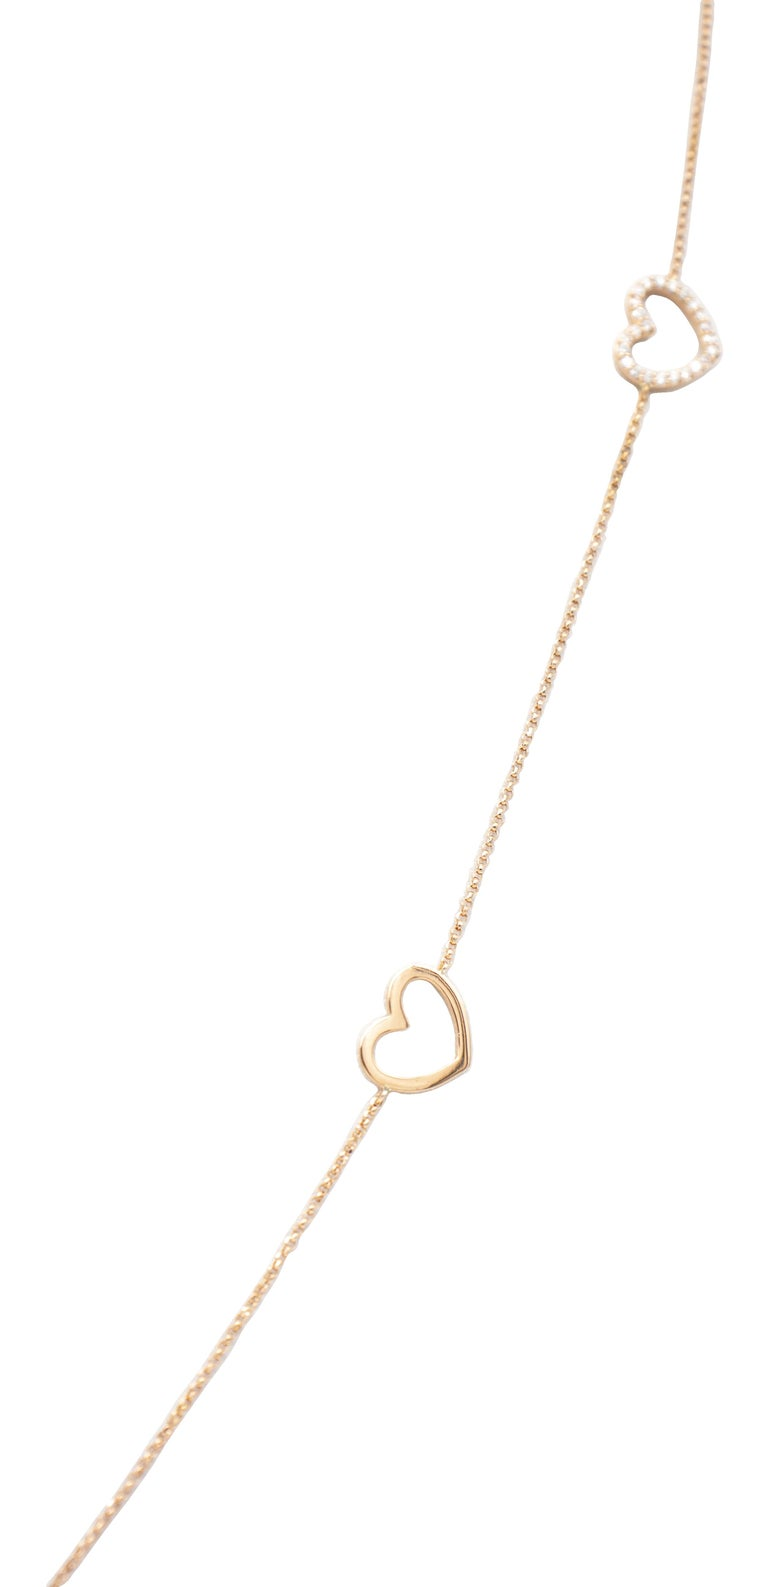 Round Cut White Diamonds, 18K Rose Gold, Heart Theme, Chain Necklace For Sale